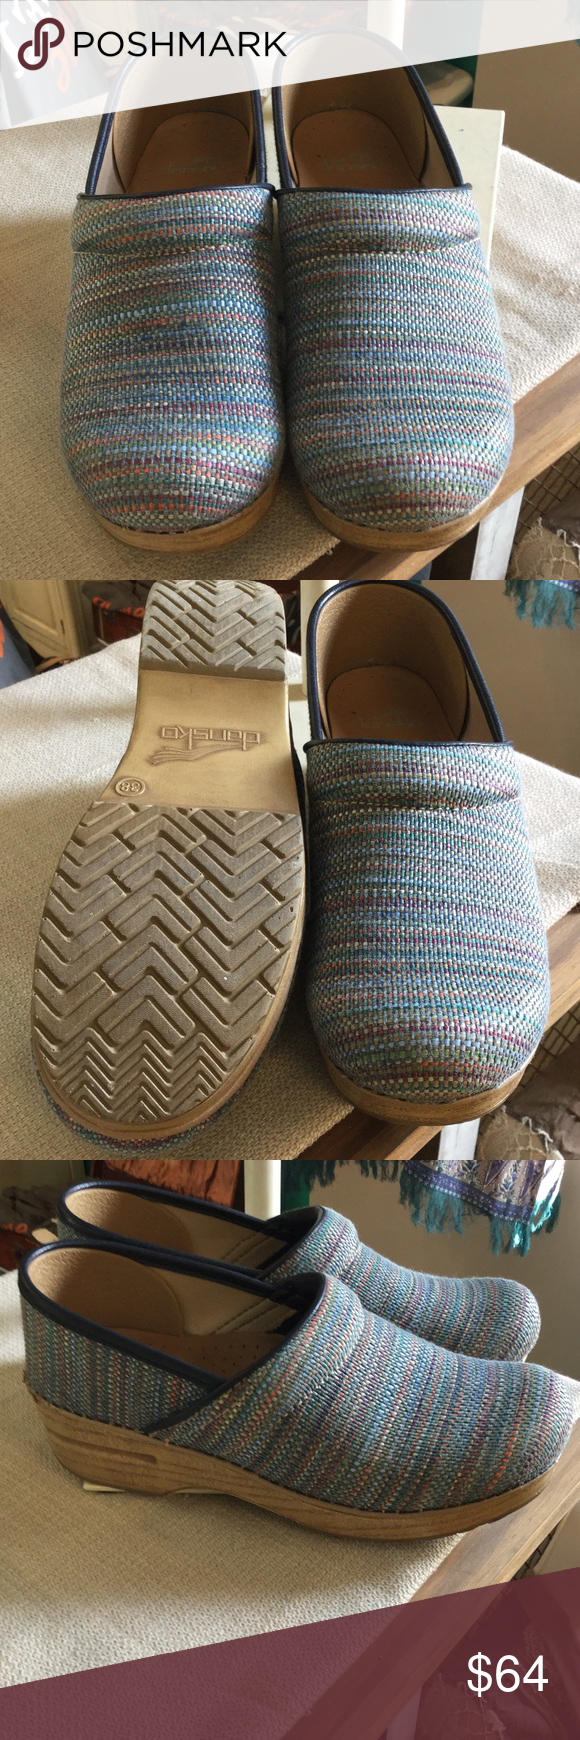 Dansko muted colorful striped shoes Stylish muted colorful striped Dansko shoes Dansko Shoes